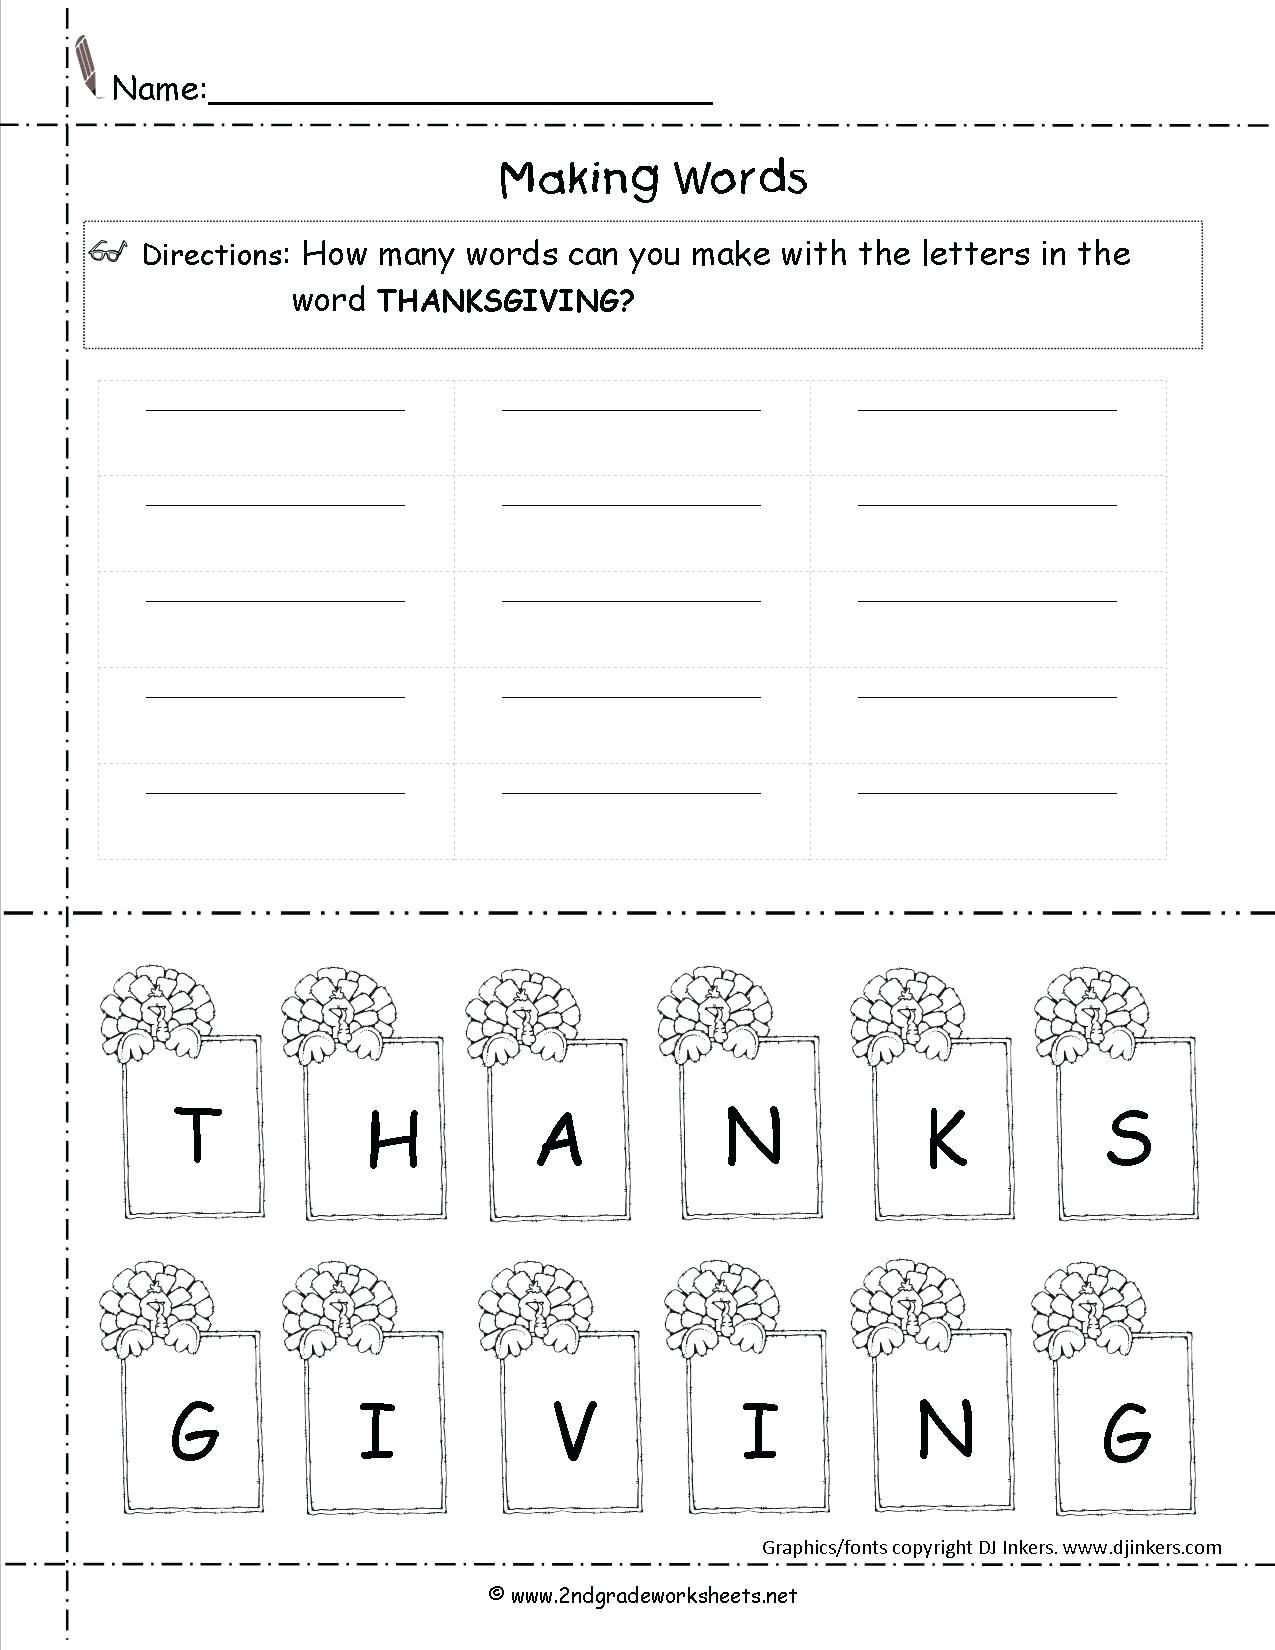 Making Words Worksheets The Best Worksheets Image